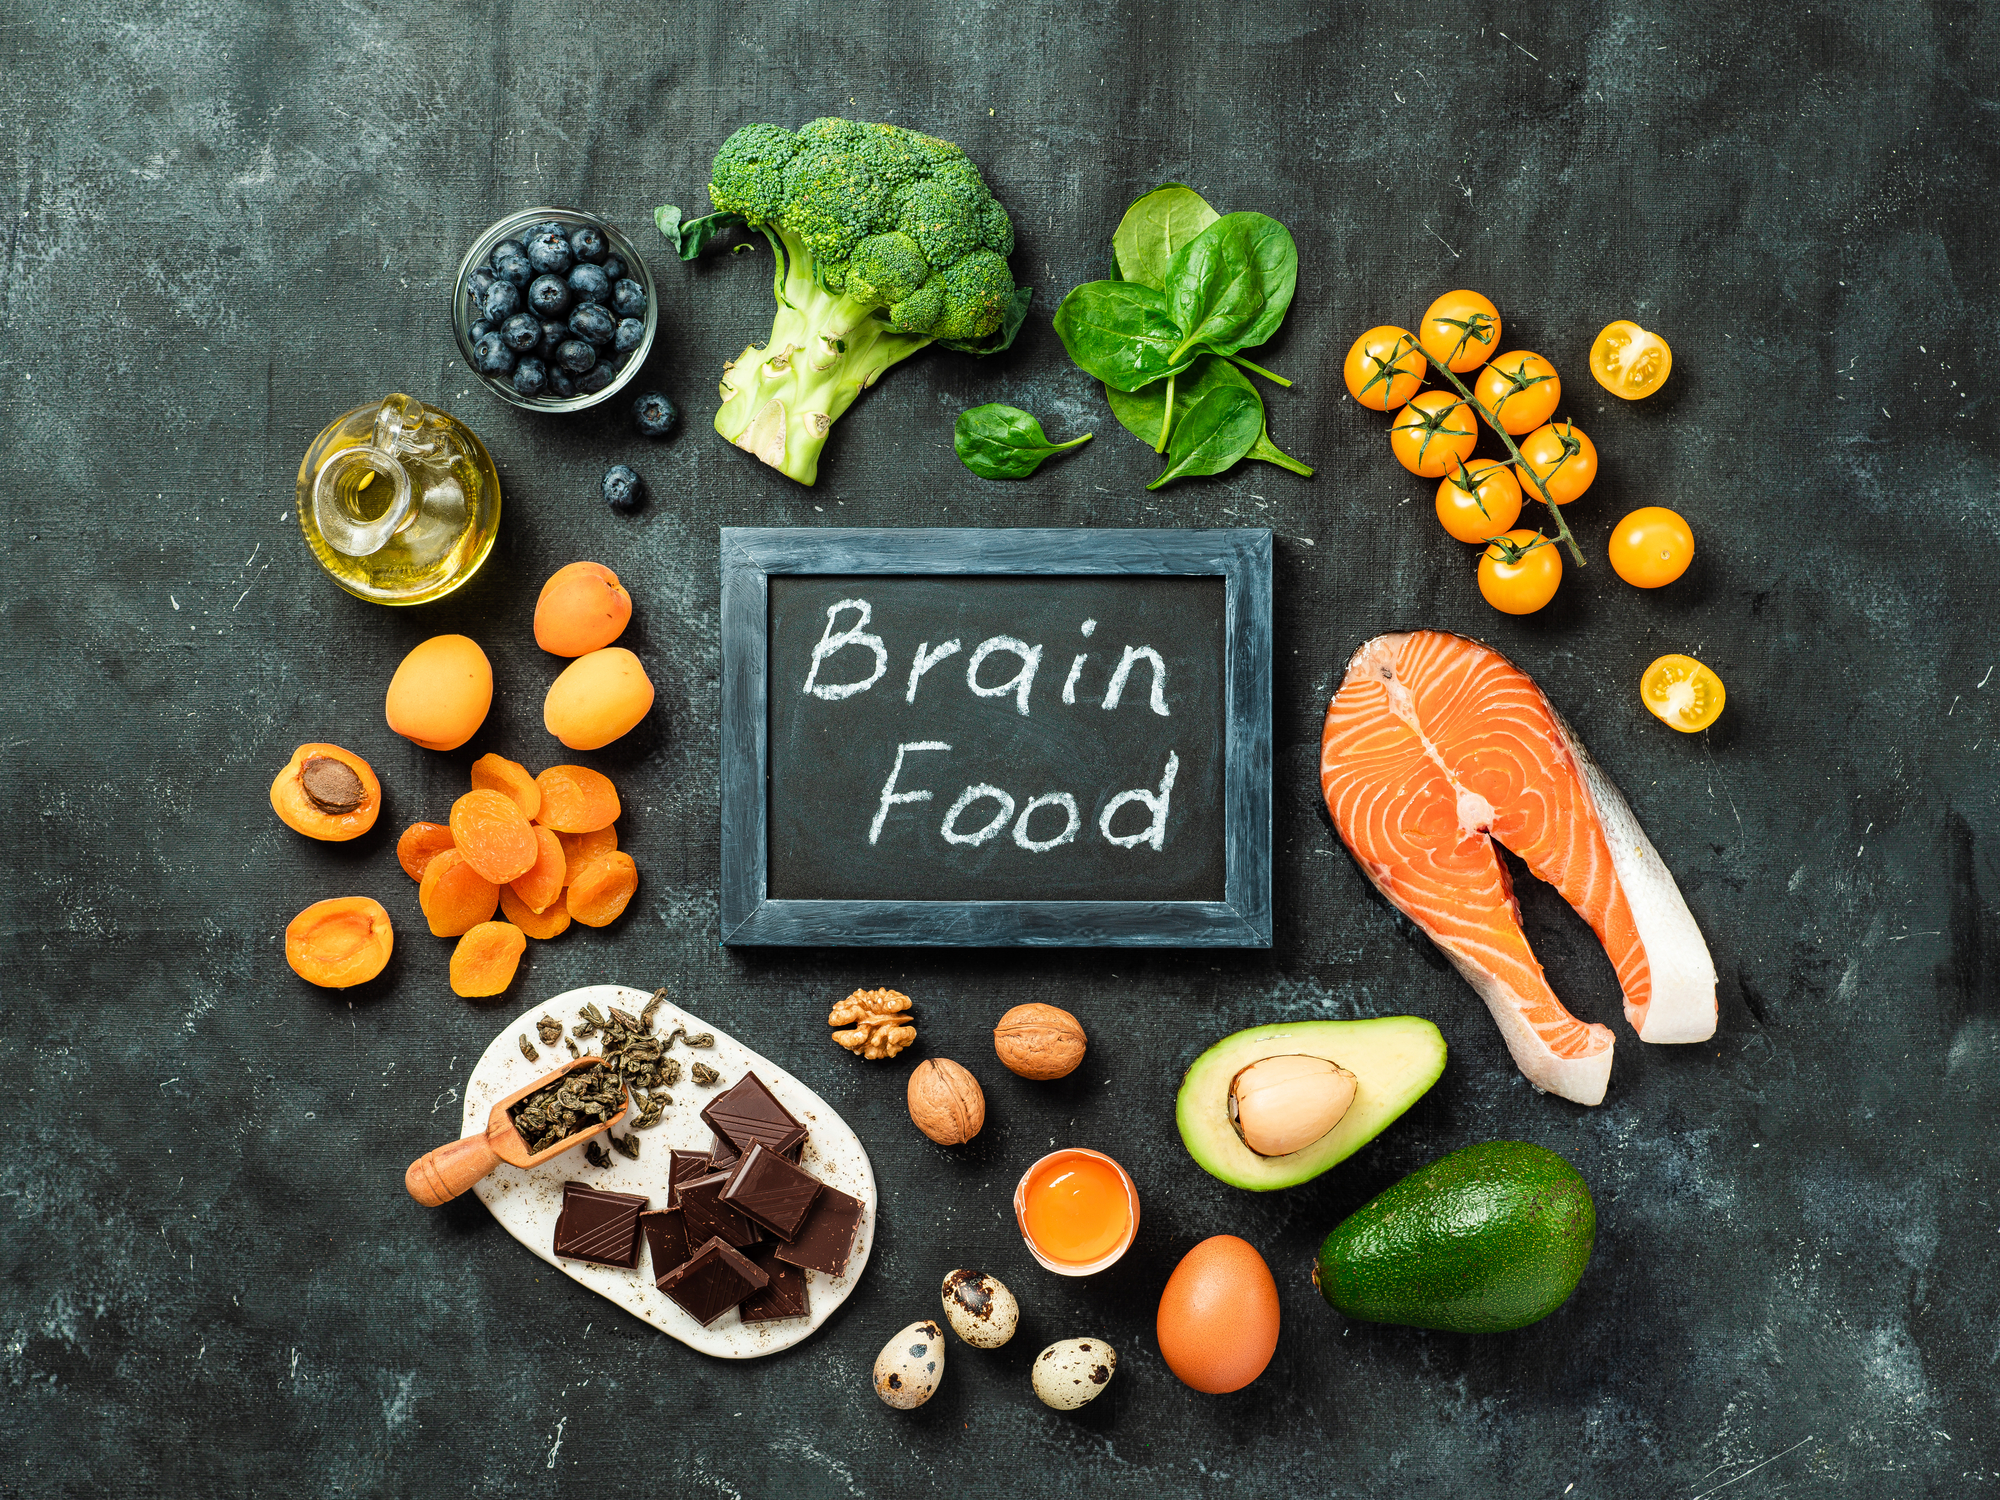 Make sure you give your brain the nourishment it requires.